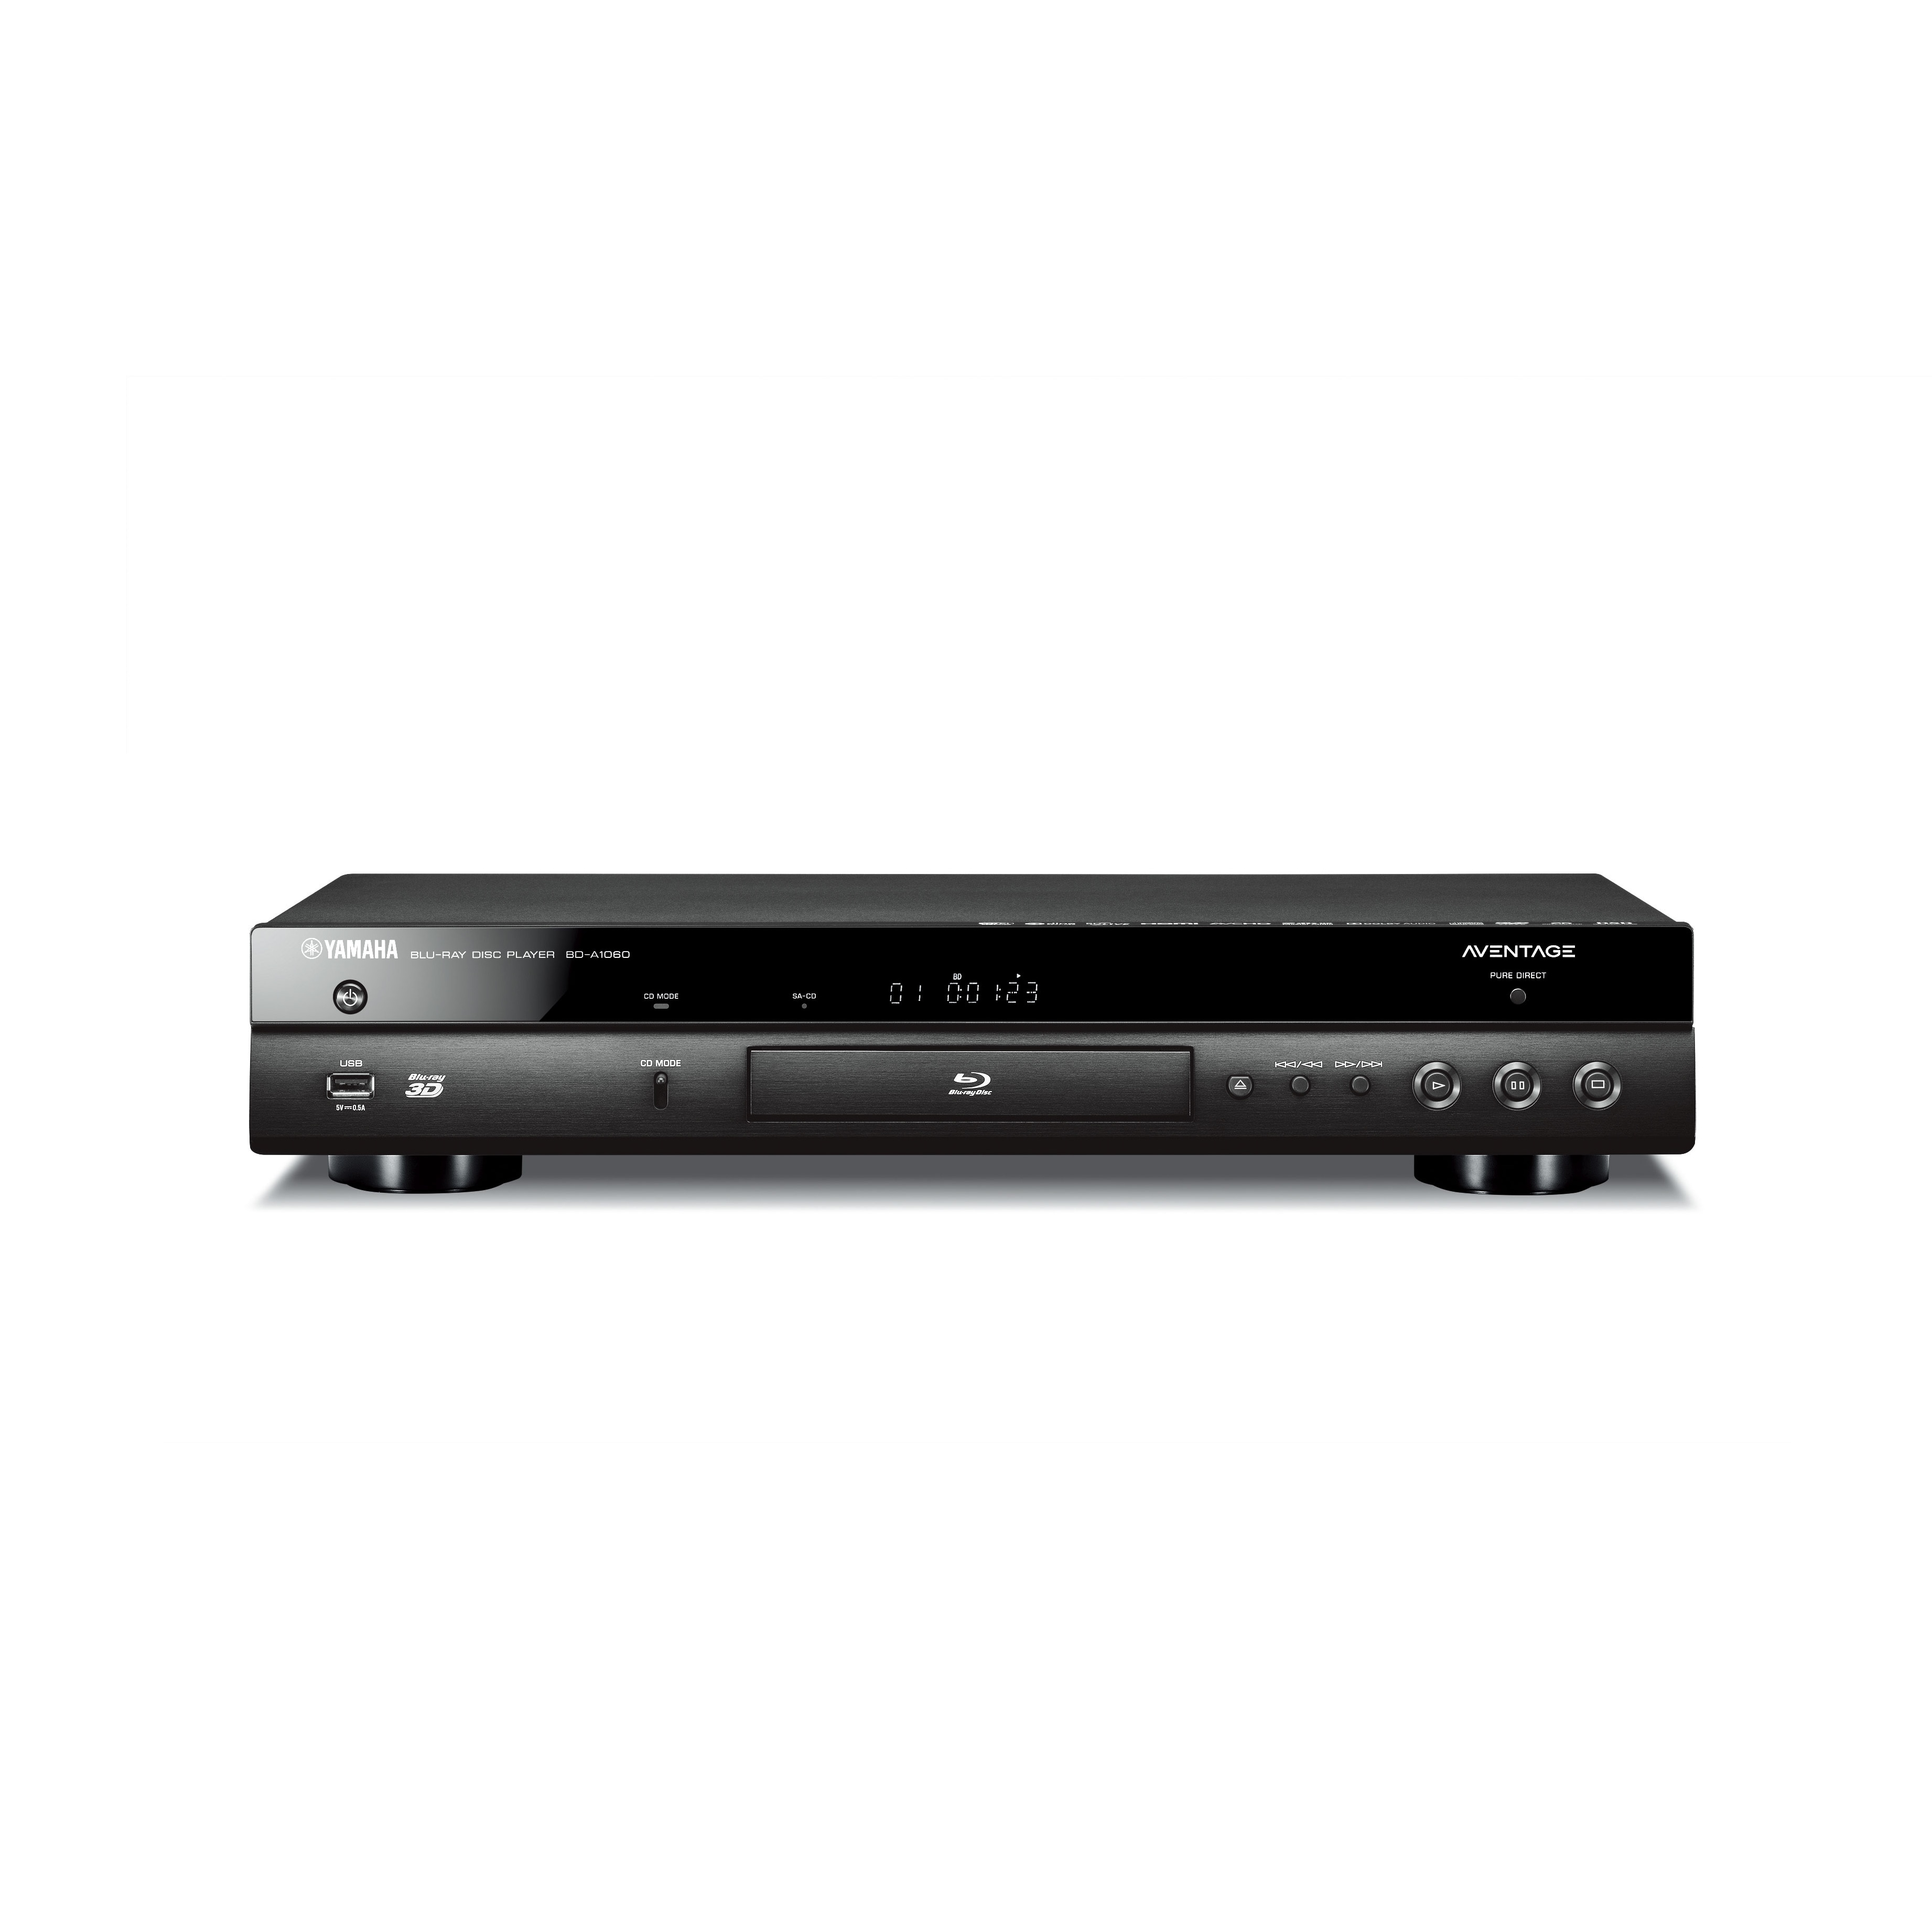 bd a1060 overview blu ray players audio visual. Black Bedroom Furniture Sets. Home Design Ideas